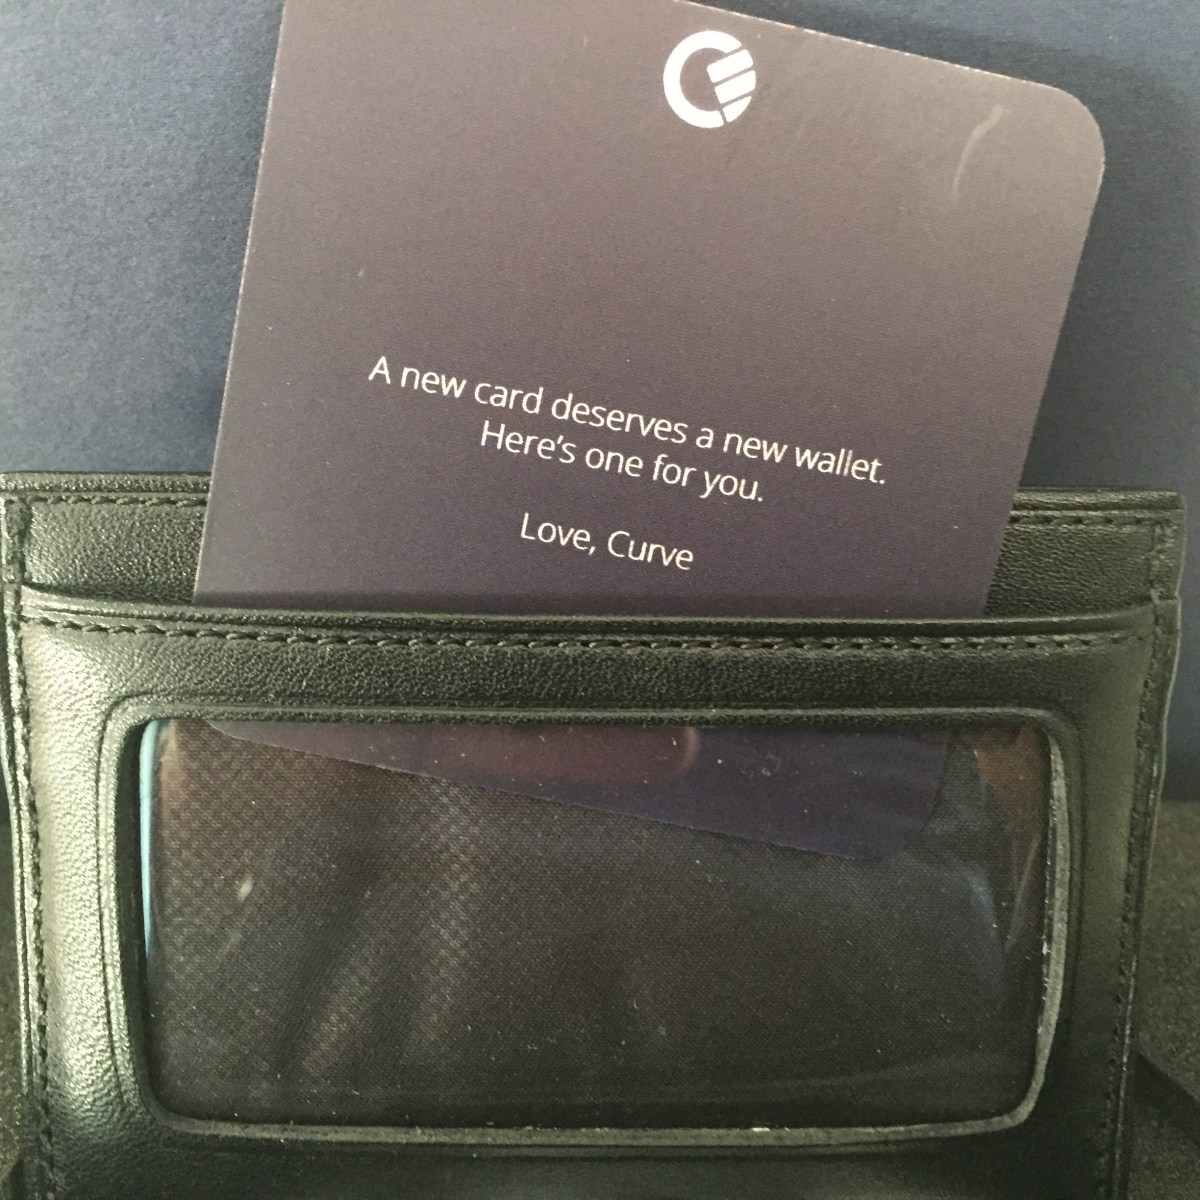 Curve - the new UK card which offers a lot, including great customer service